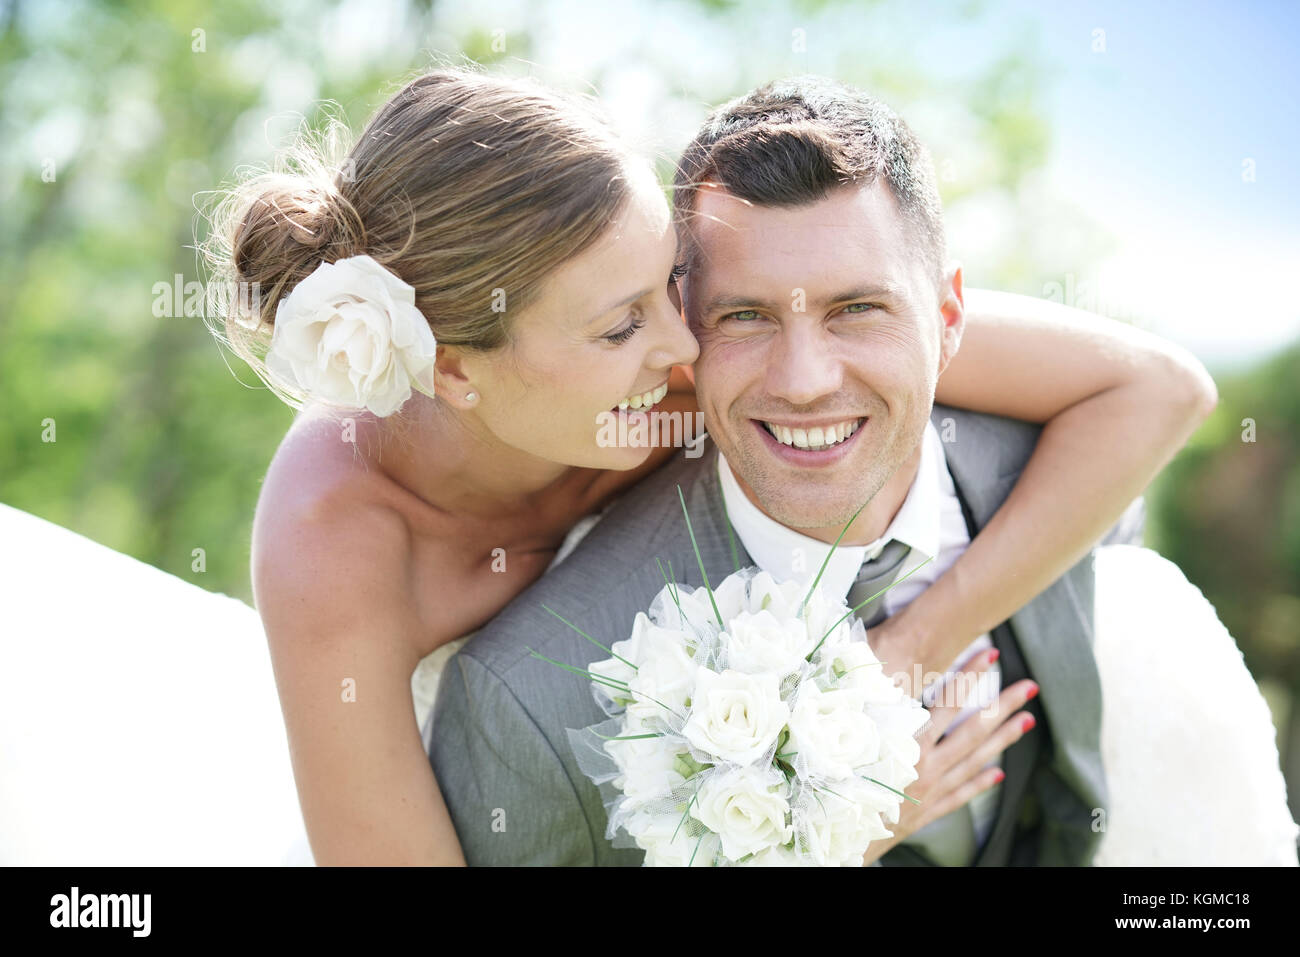 Groom giving piggyback ride to bride in countryside Stock Photo